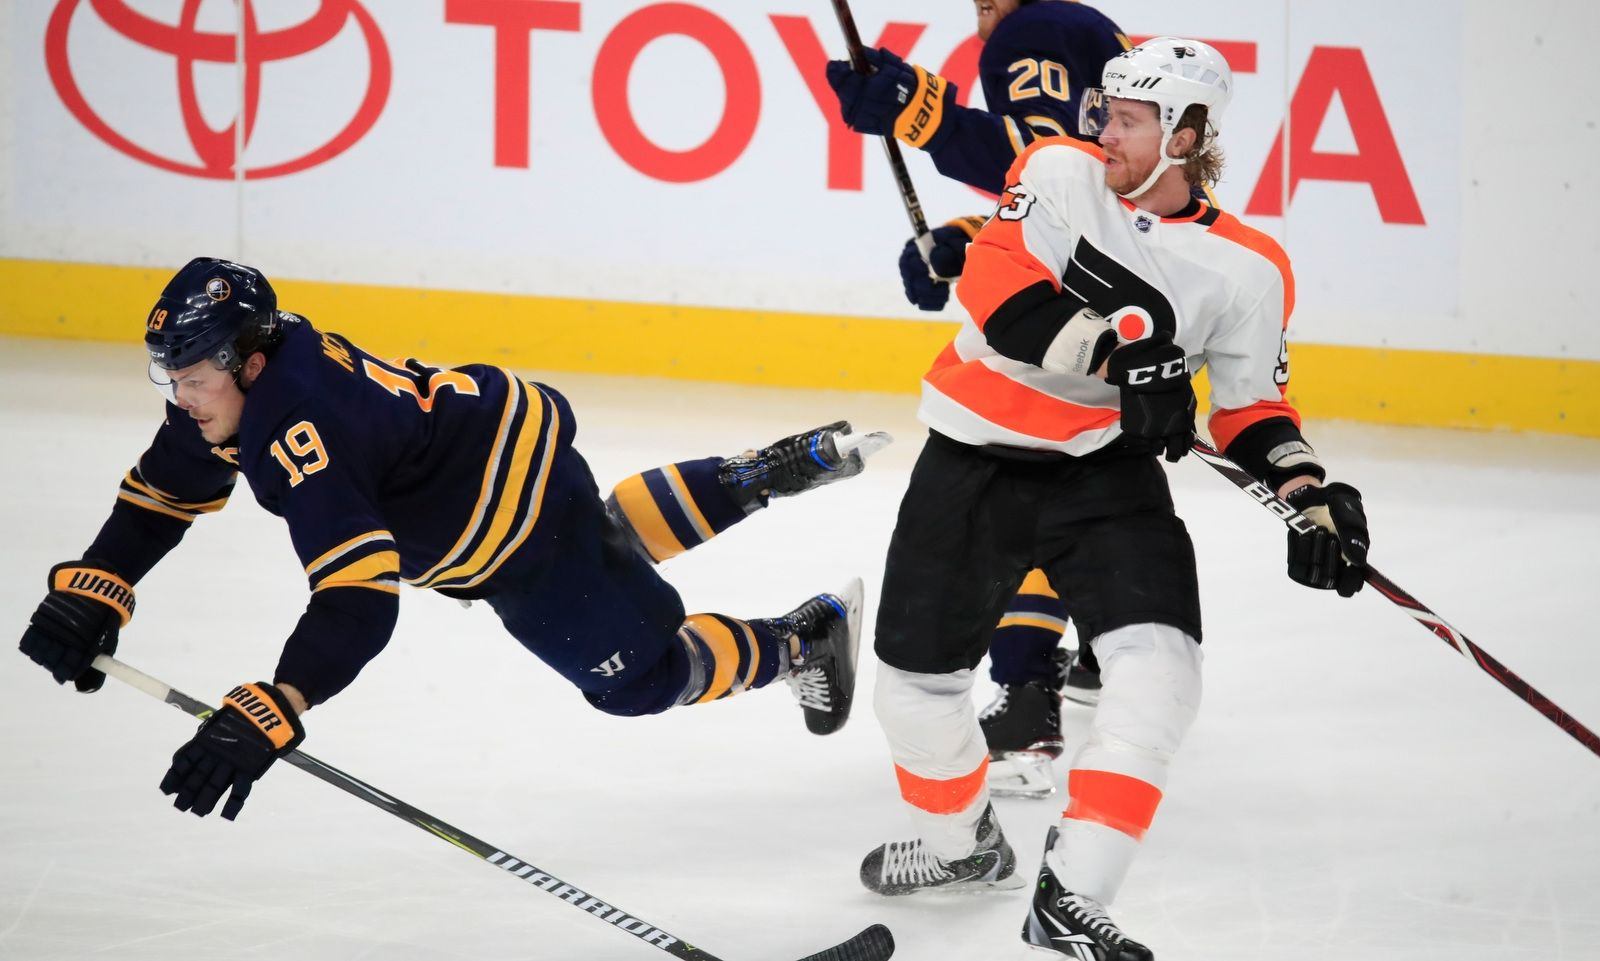 Buffalo Sabres defenseman Jake McCabe is checked by Philadelphia Flyers' Jakub Voracek during third period action at the KeyBank Center on Friday, Dec. 22, 2017.